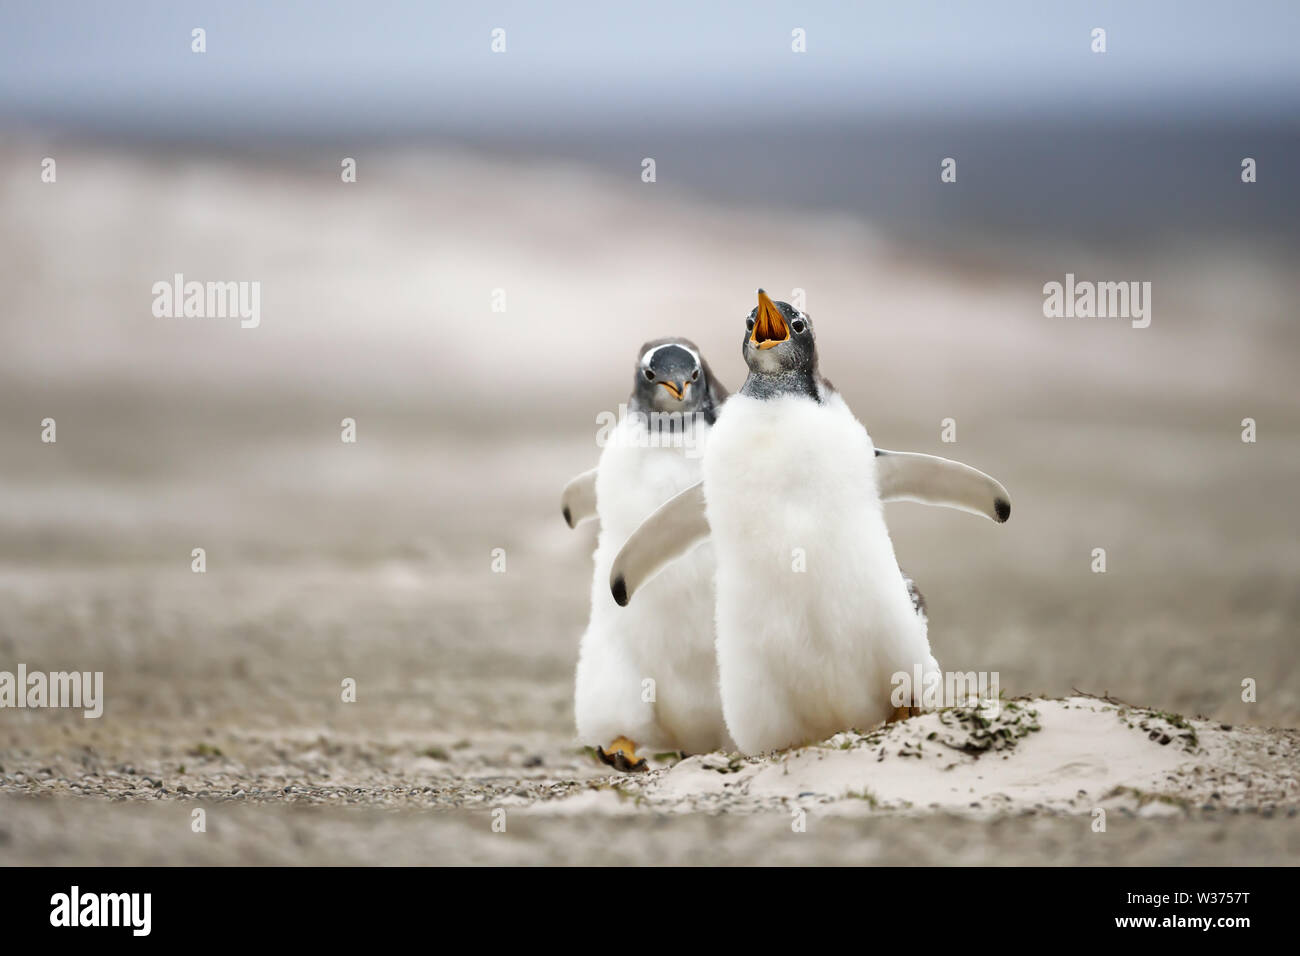 Close up of two young Gentoo penguins chasing each other, summer in the Falkland Islands. Stock Photo